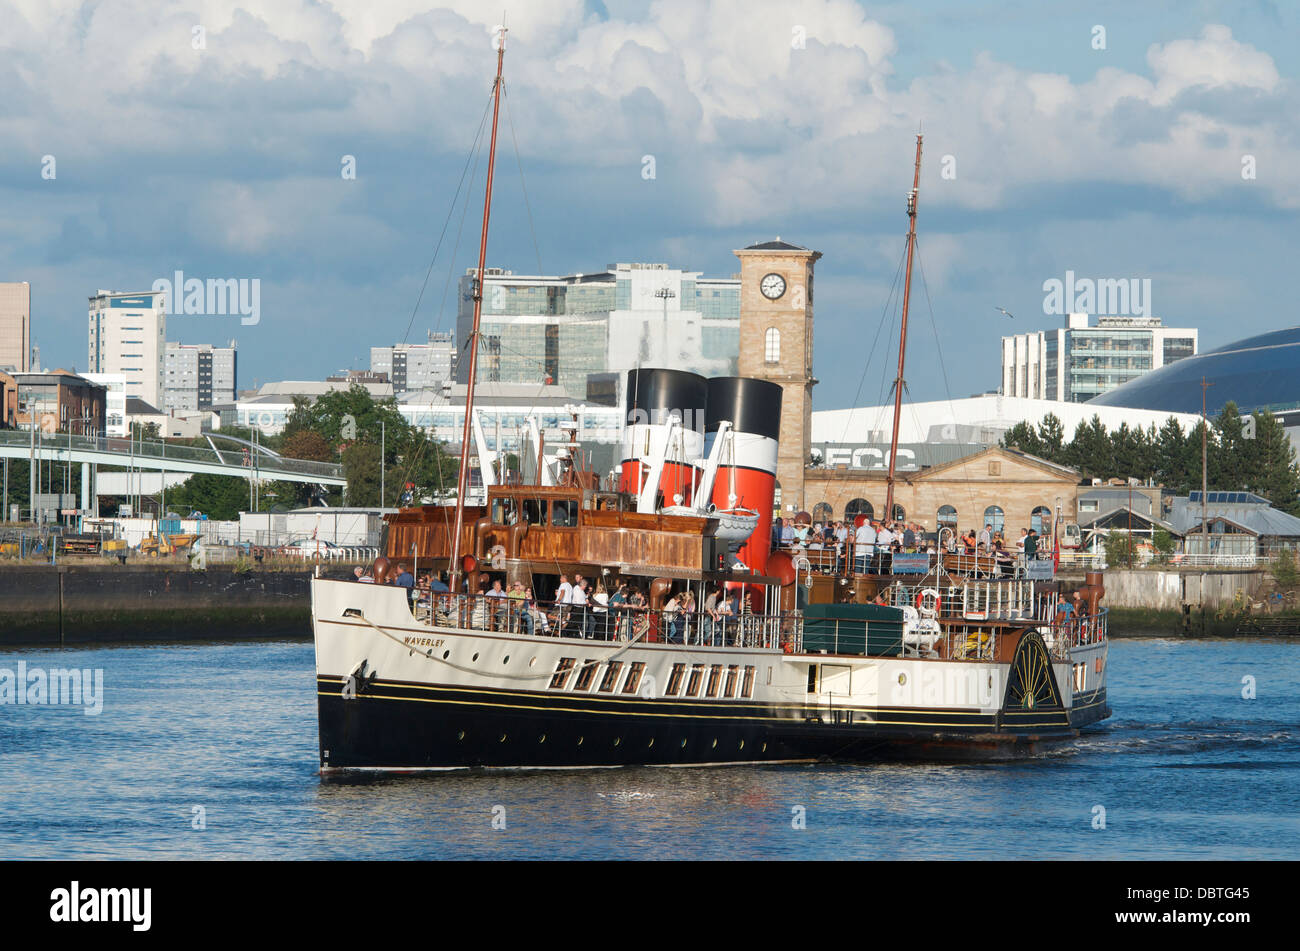 Paddle steamer Waverley sails down the Clyde past Finnieston, Glasgow. - Stock Image